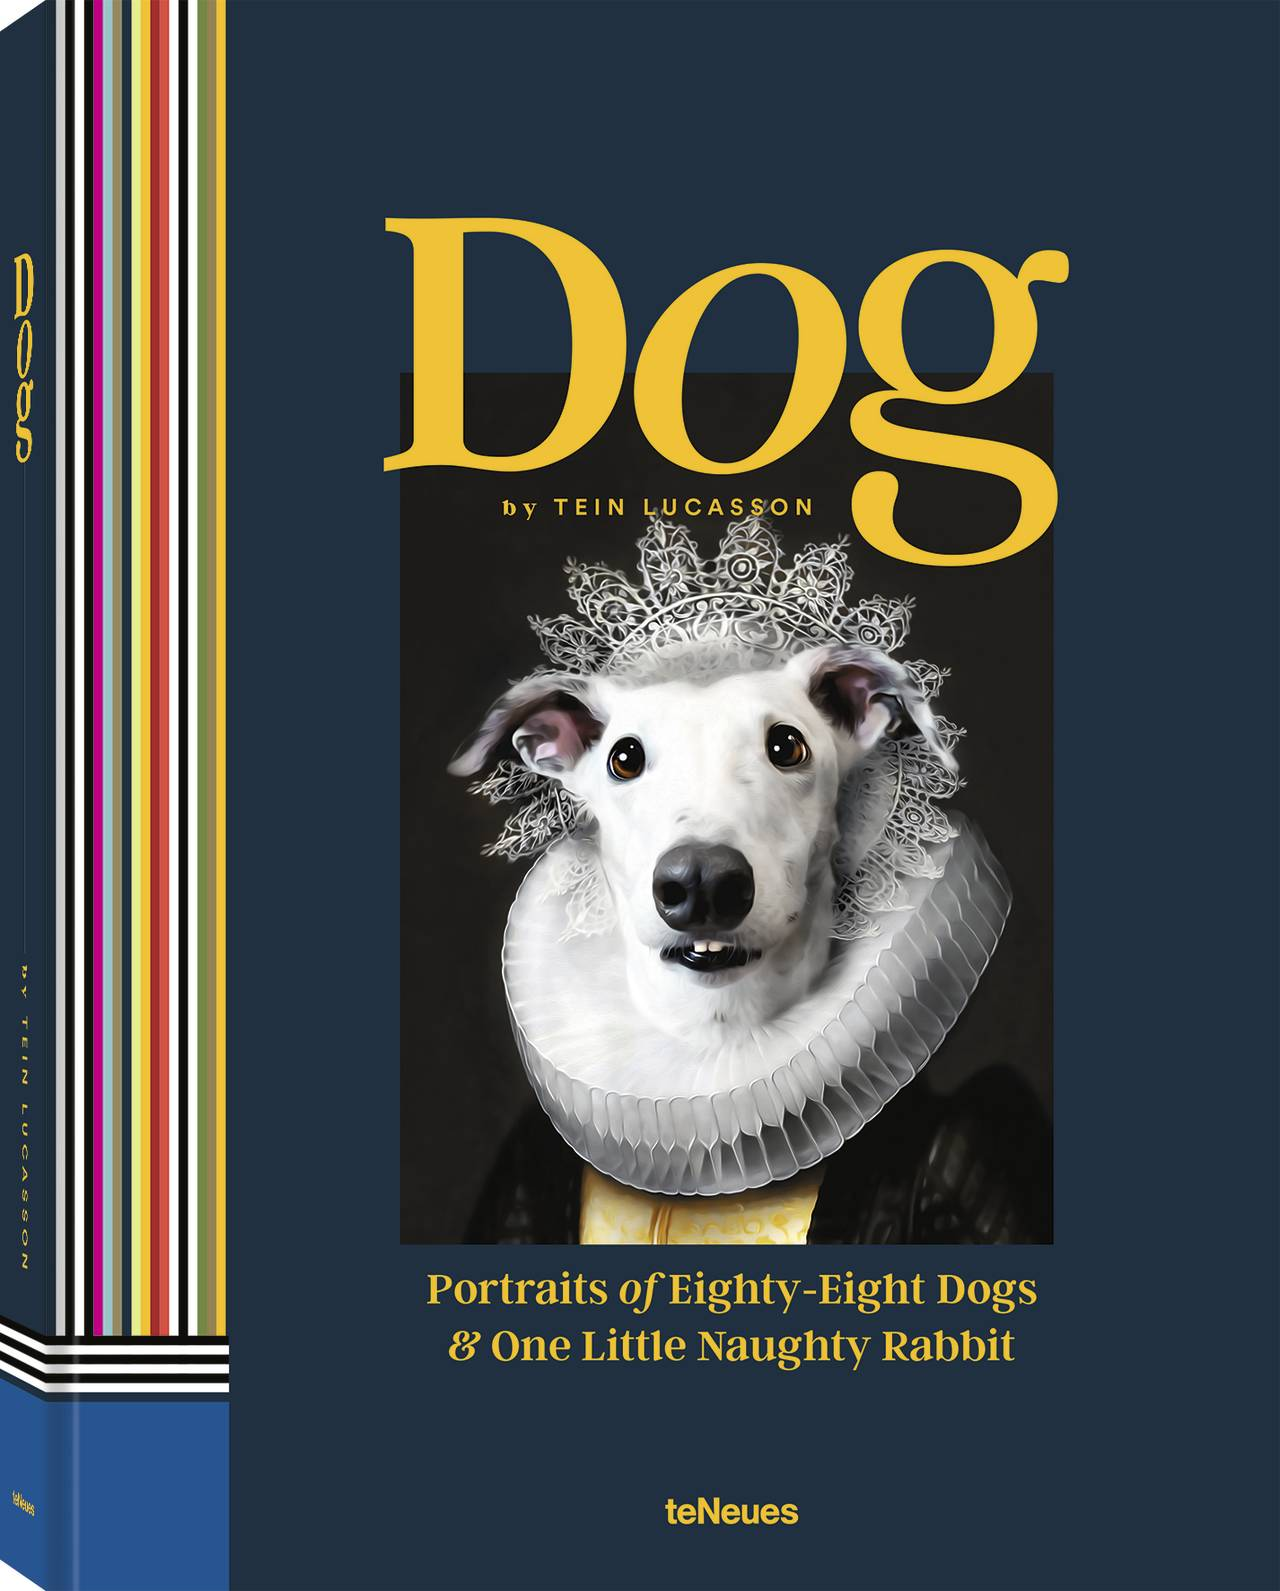 © Dog - Portraits of Eighty-Eight Dogs & One Little Naughty Rabbit by Tein Lucasson, published by teNeues, www.teneues.com, Salty, Photo © 2020 Tein Lucasson. All rights reserved.